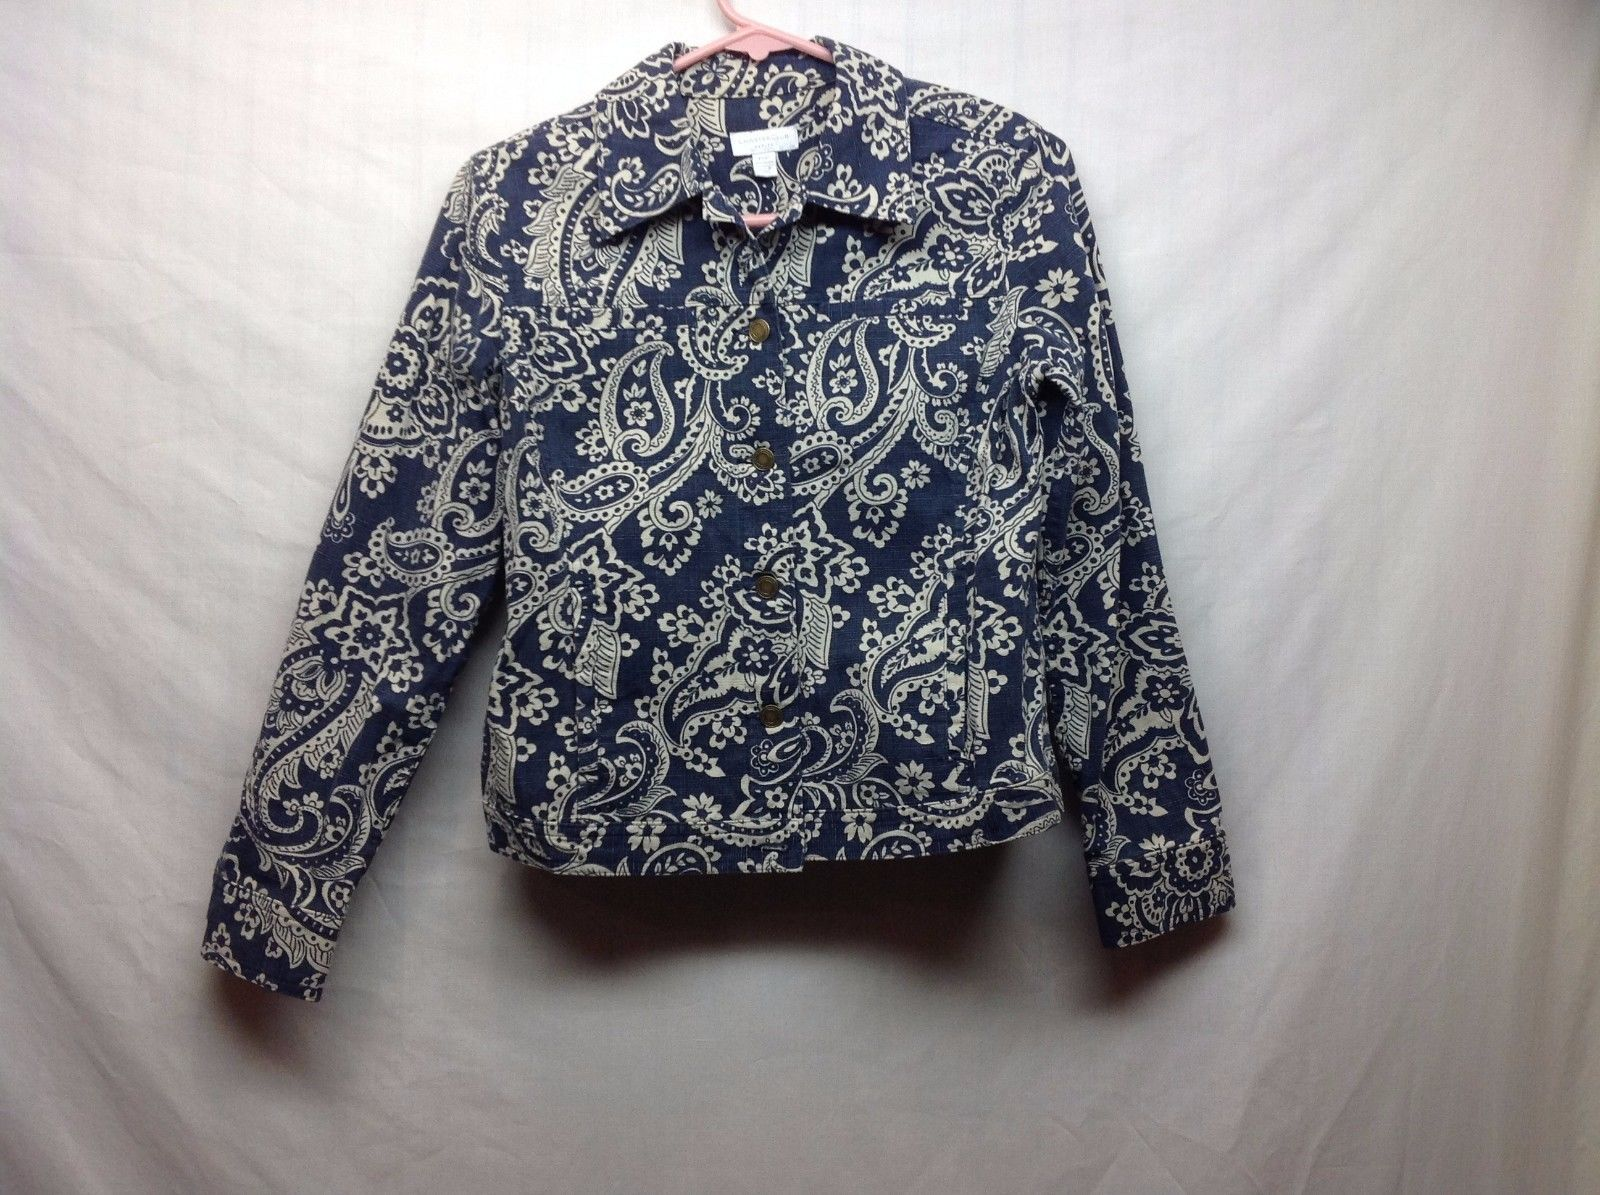 Ladies Paisley Denim Jacket Blazer by Charter Club Sz PP